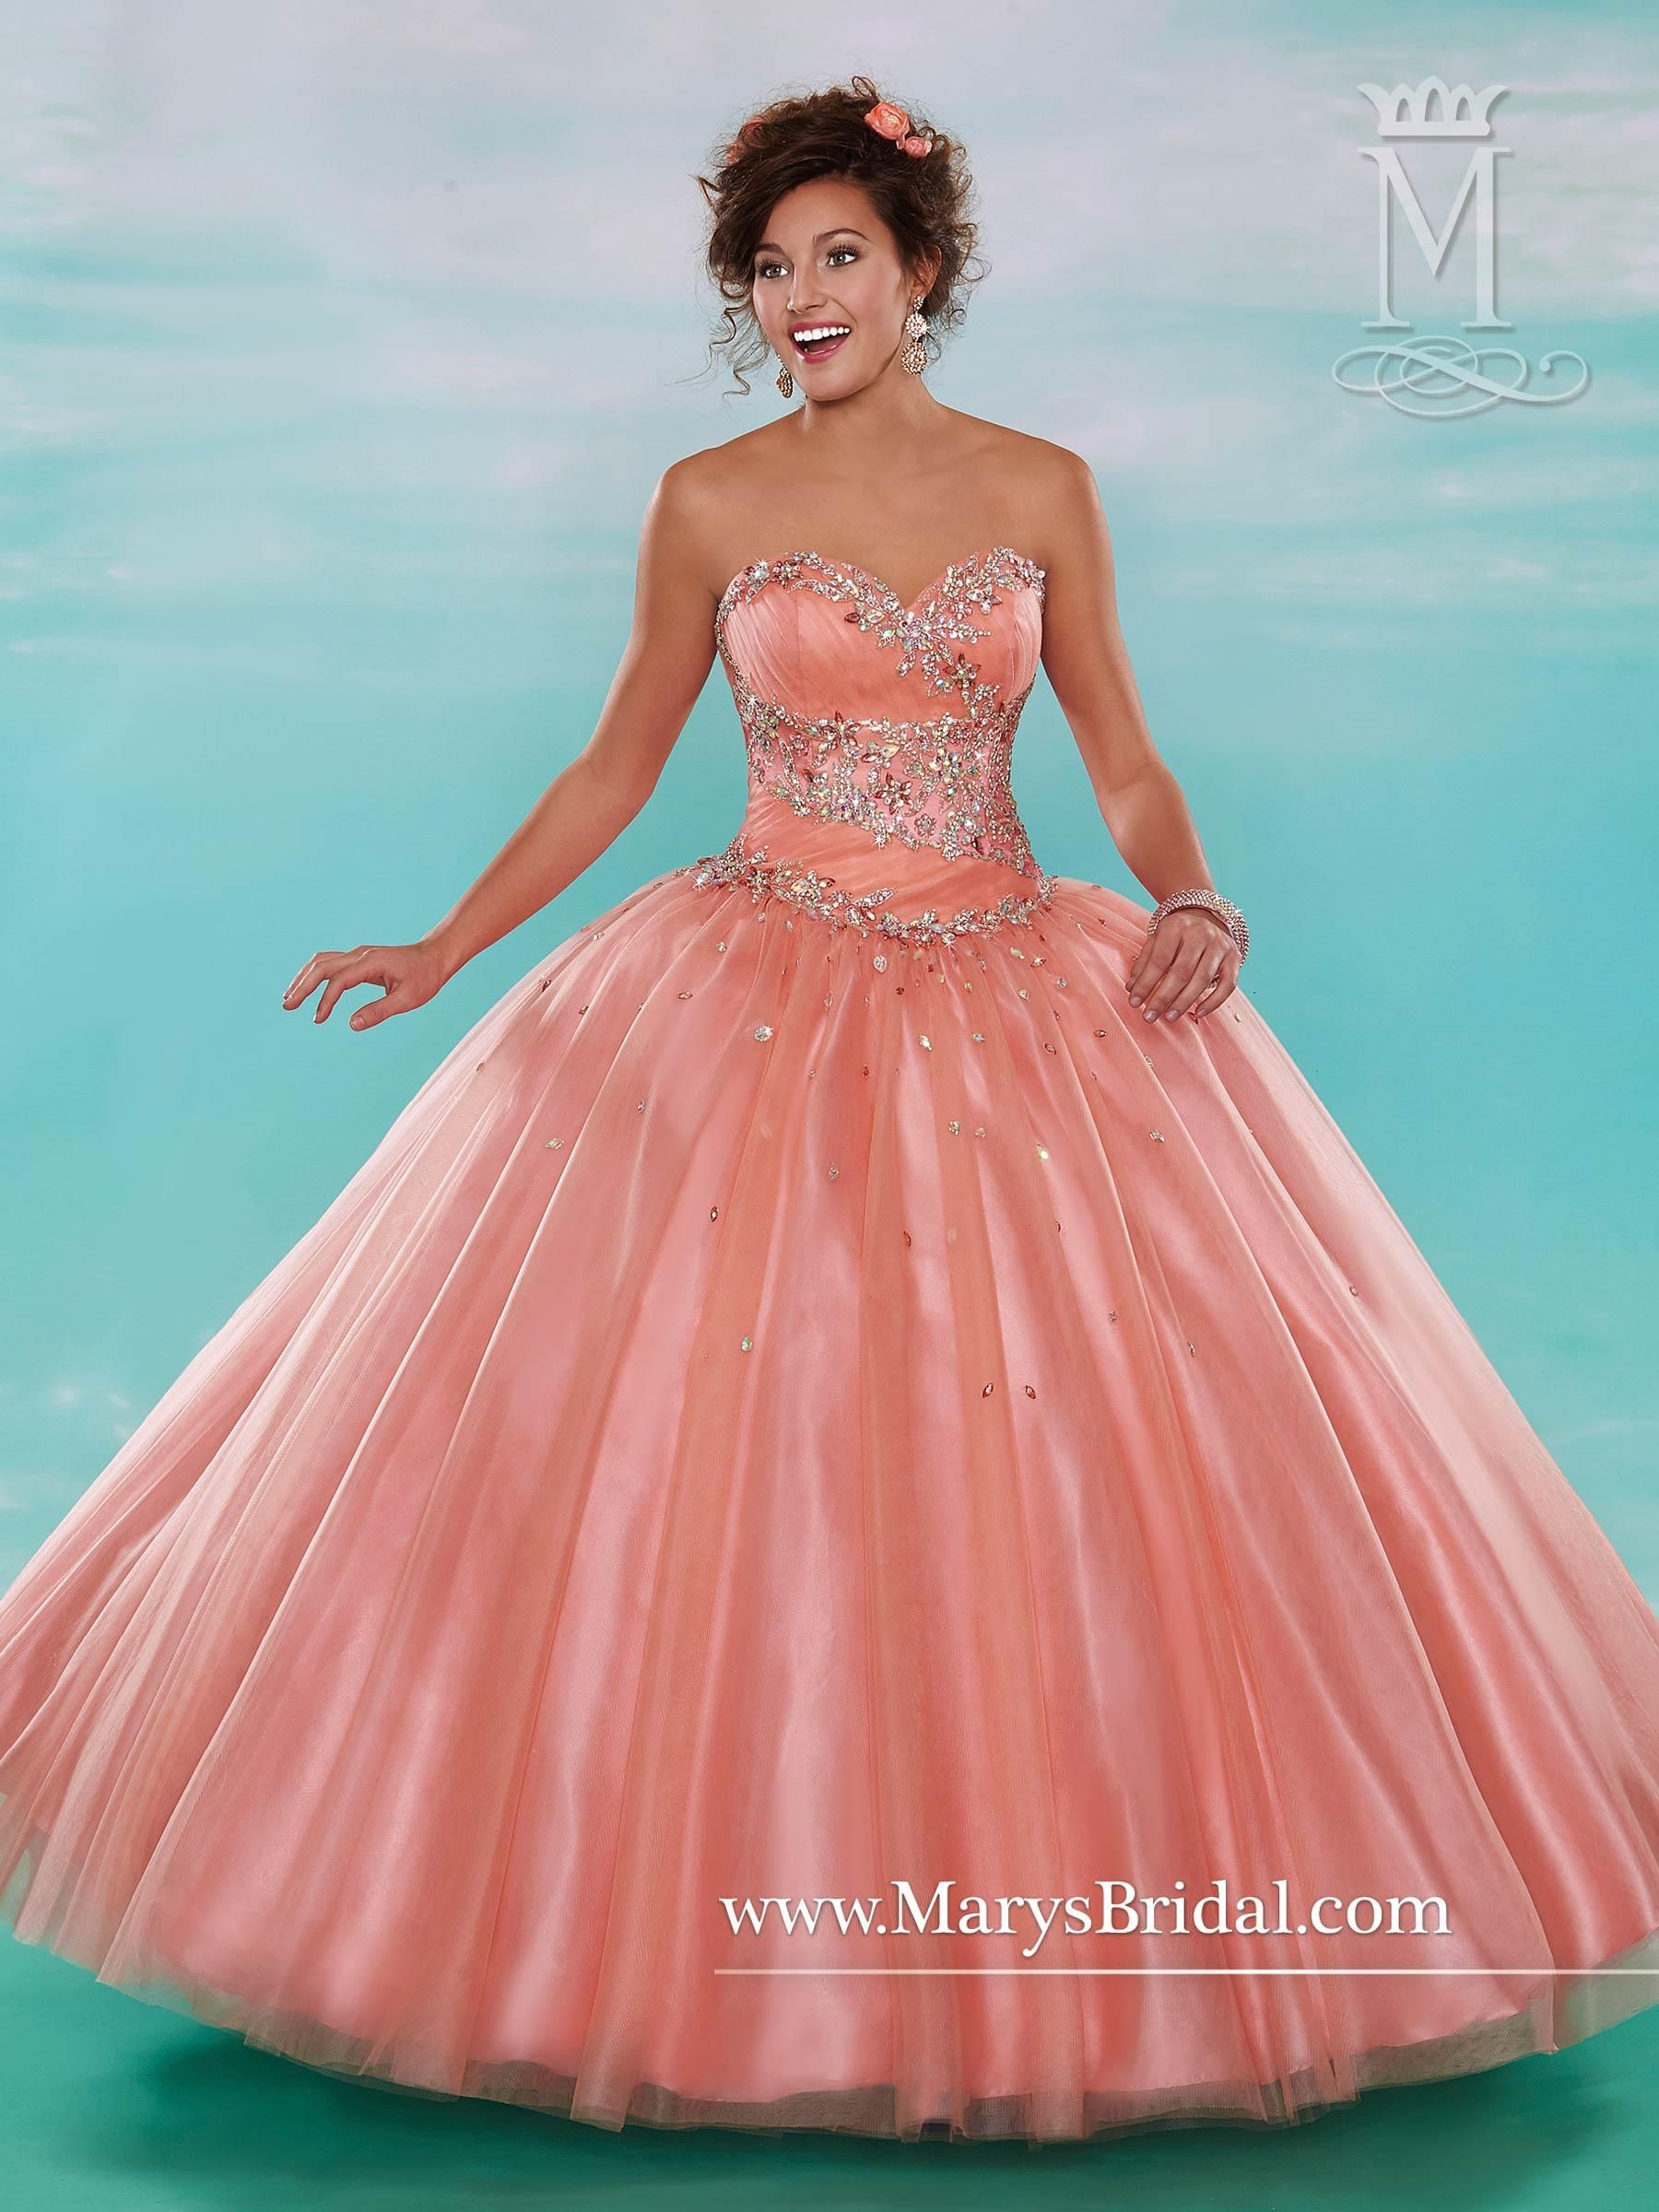 Mary\'s Peach Sorbet Quinceanera Dresses 2015 Winter Sweetheart Neck ...